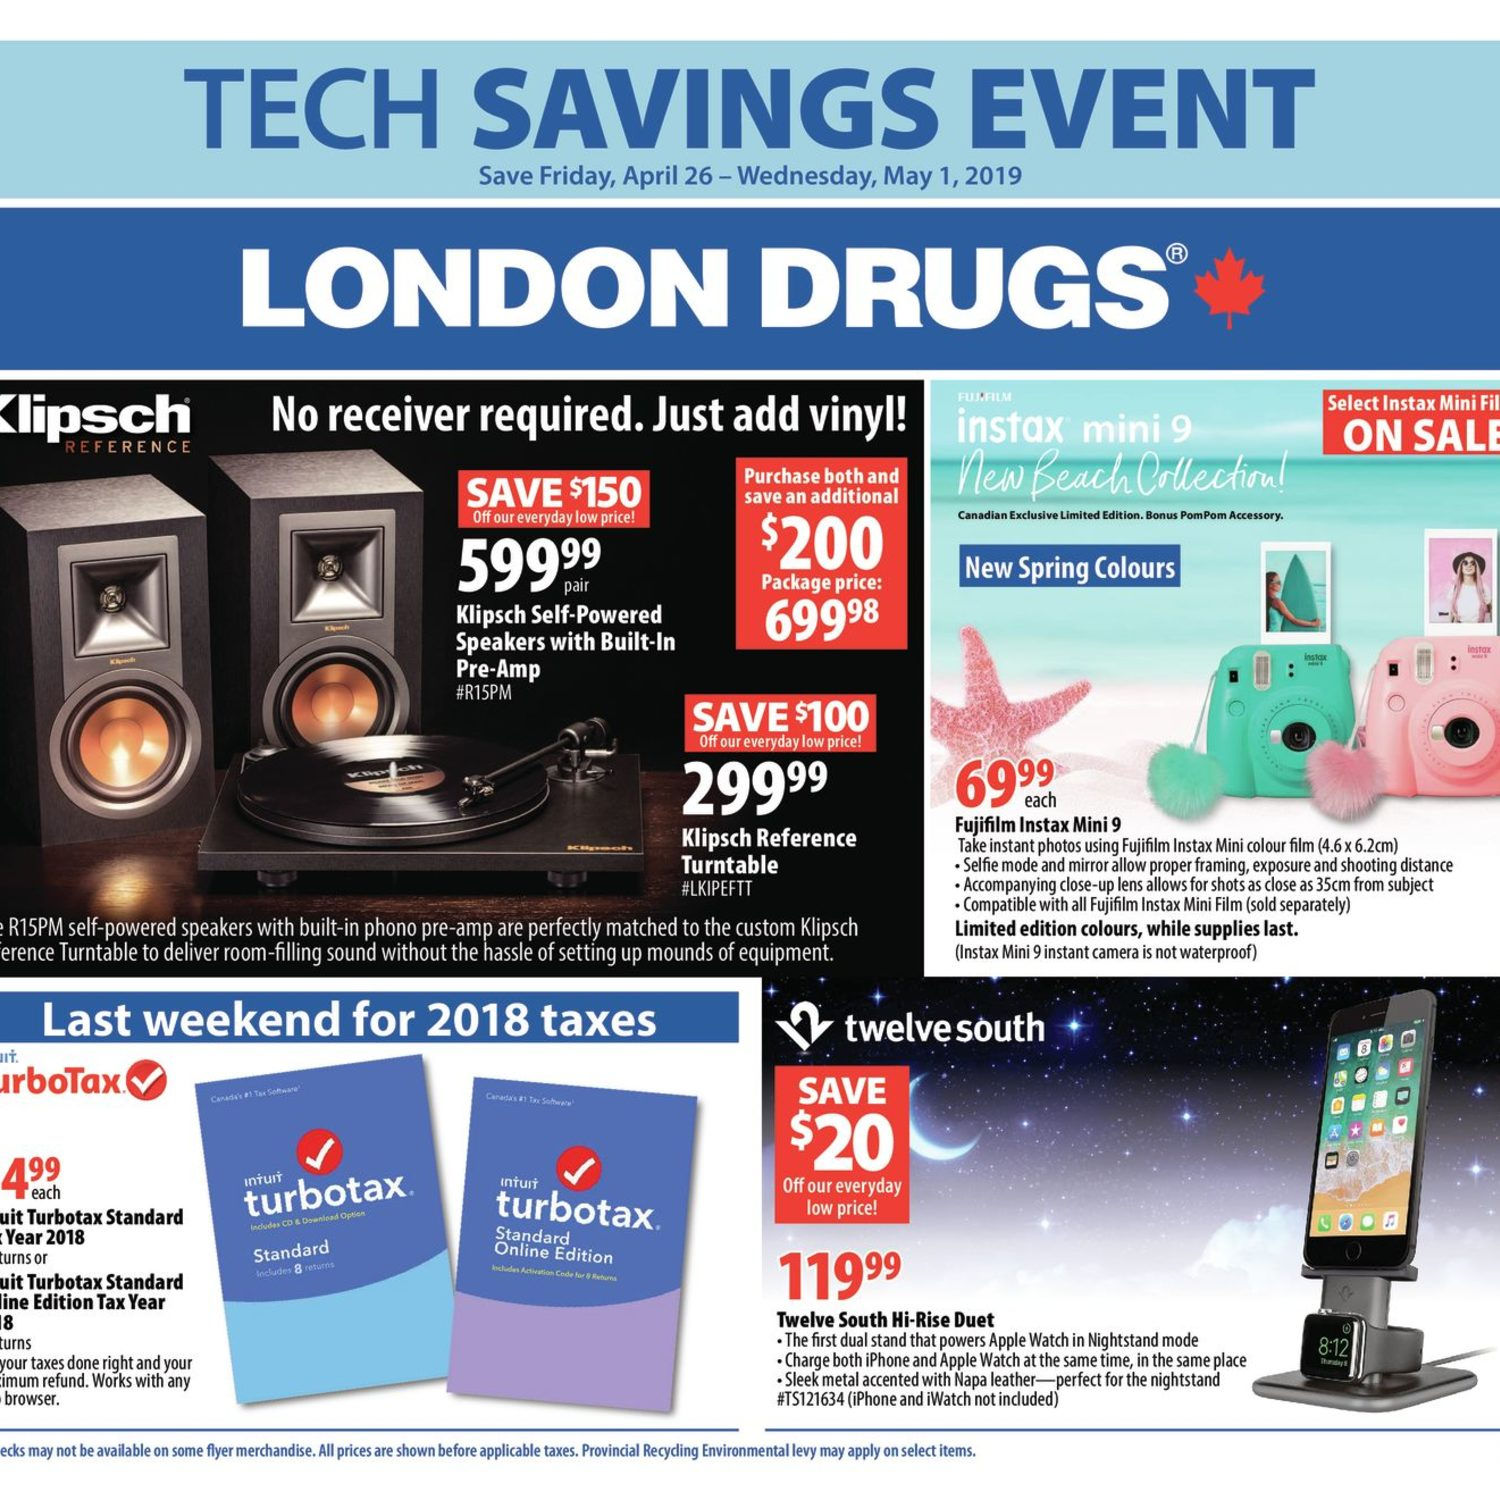 London Drugs Weekly Flyer - Tech Savings Event - Apr 26 – May 1